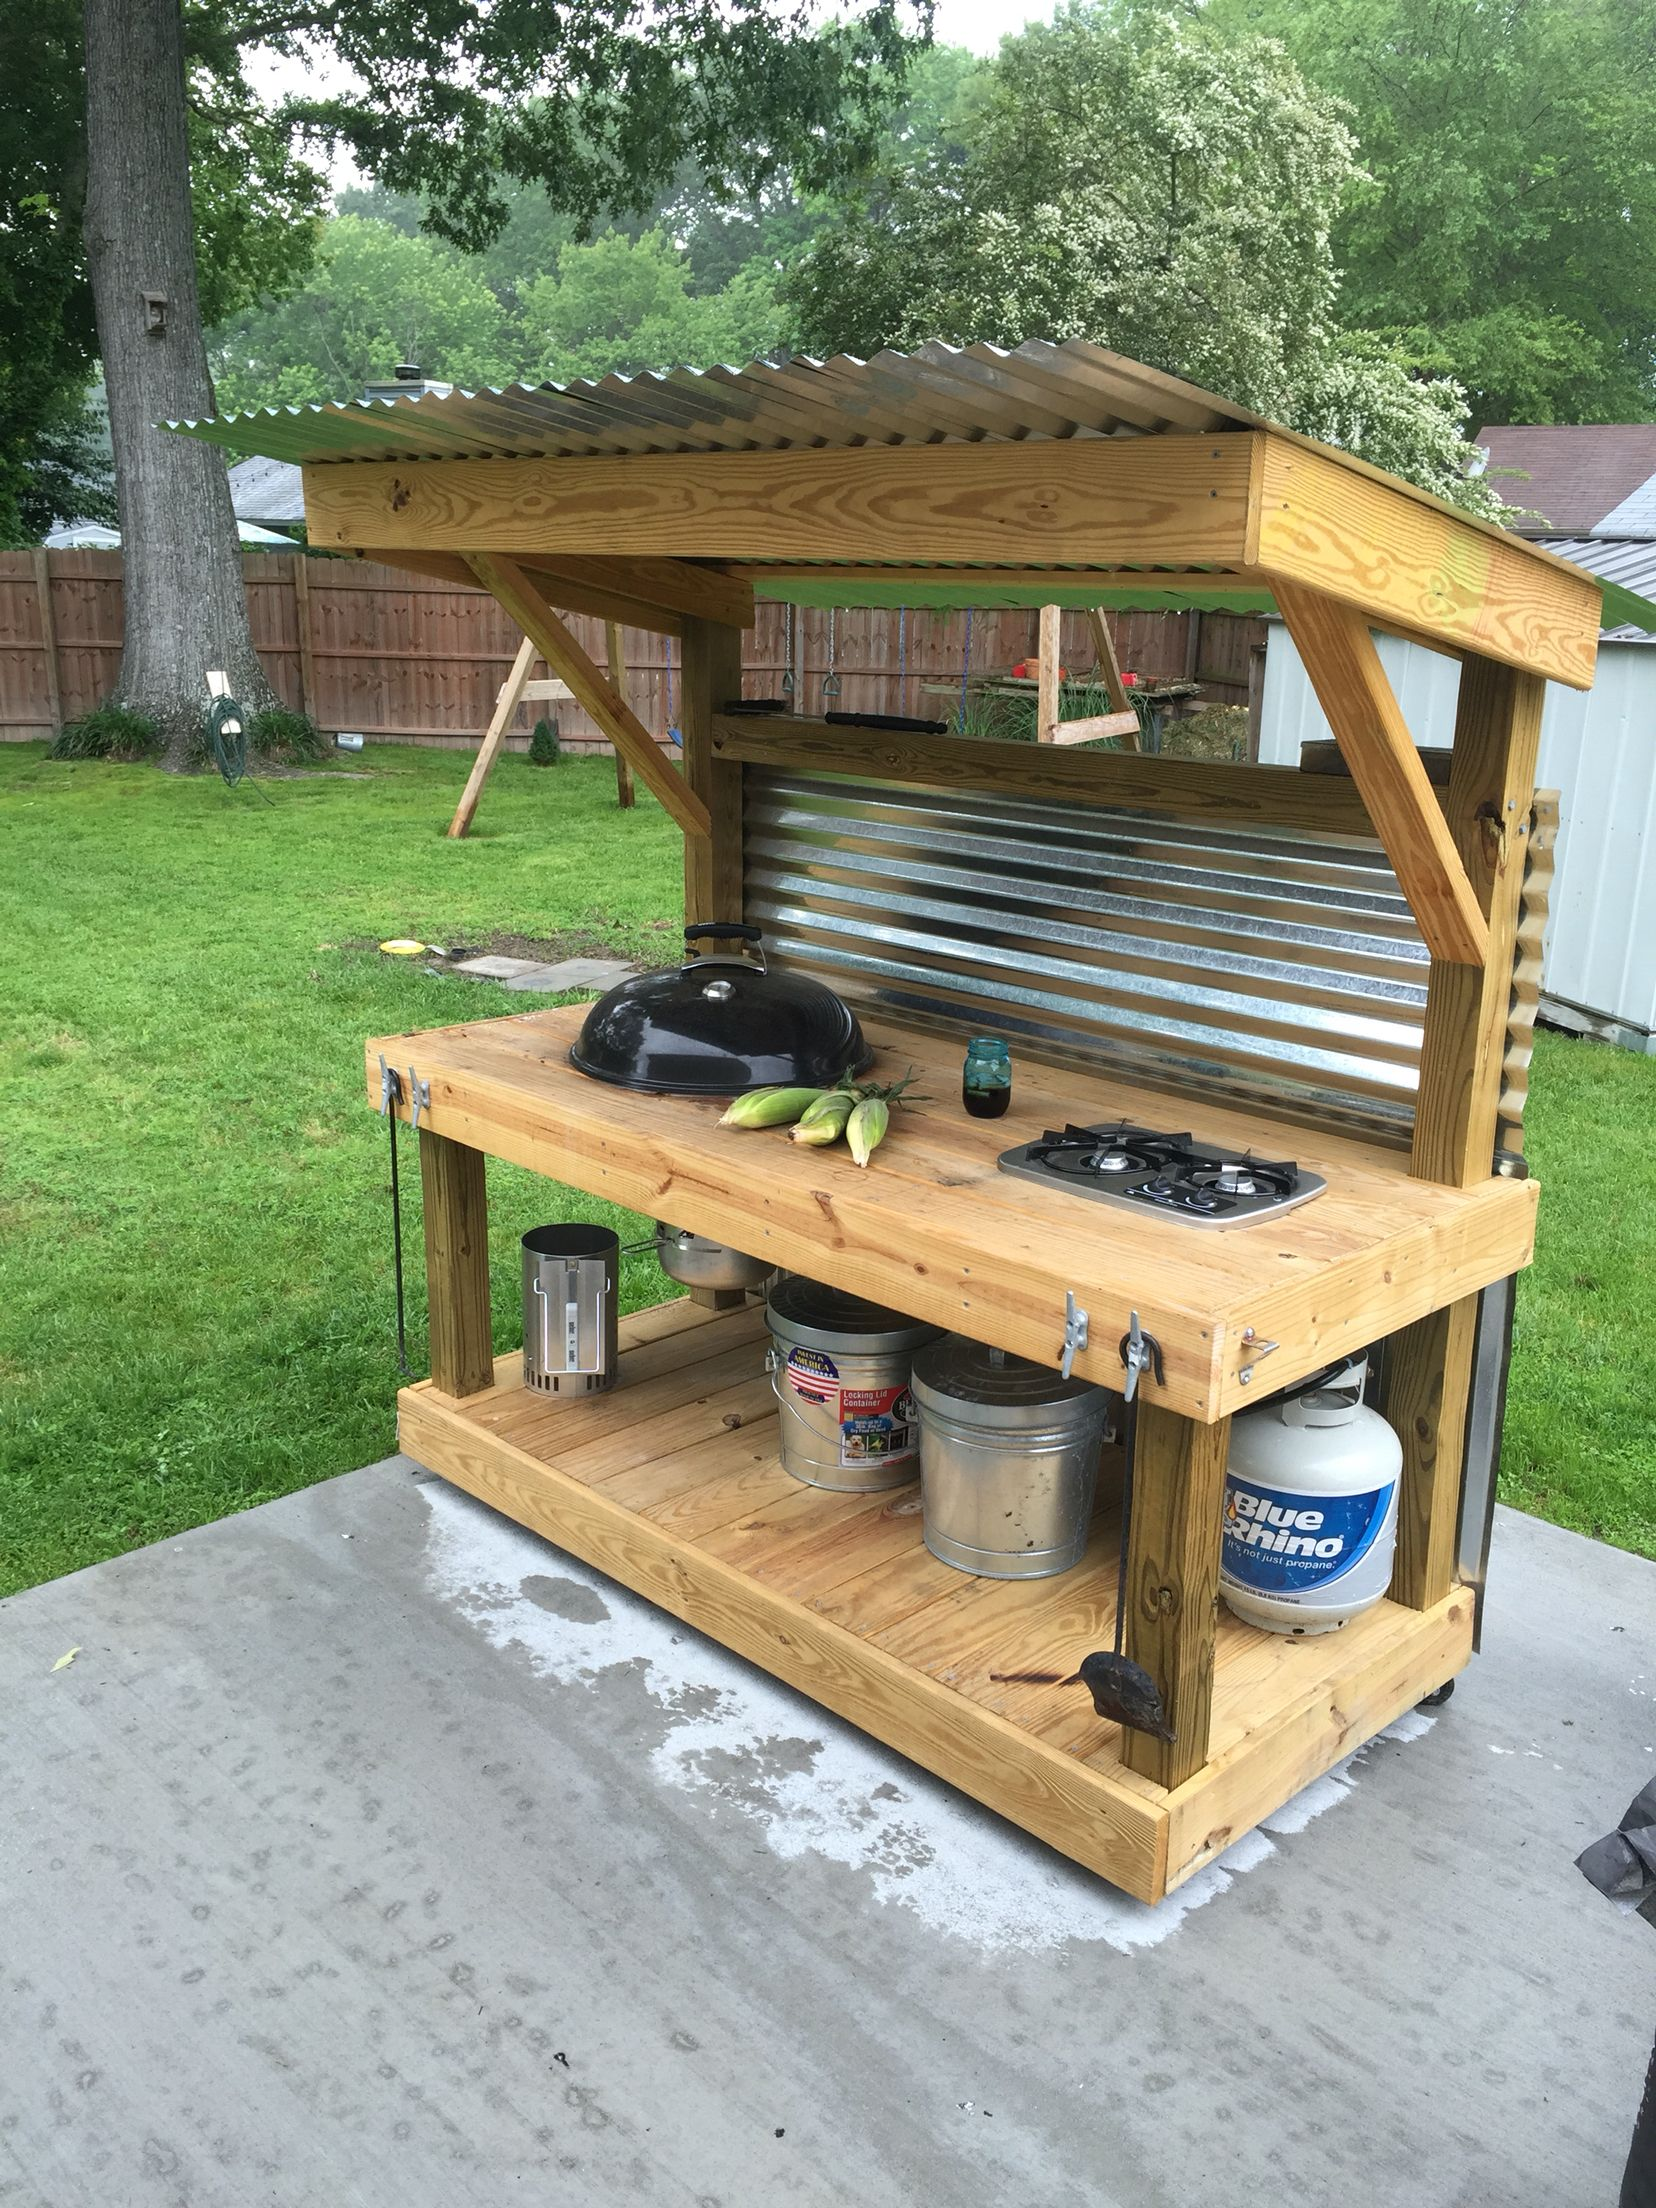 Outdoor Kitchen Storage Cart How To Decorate Cabinets Weber Kettle Homemade Table The Bbq Brethren Forums